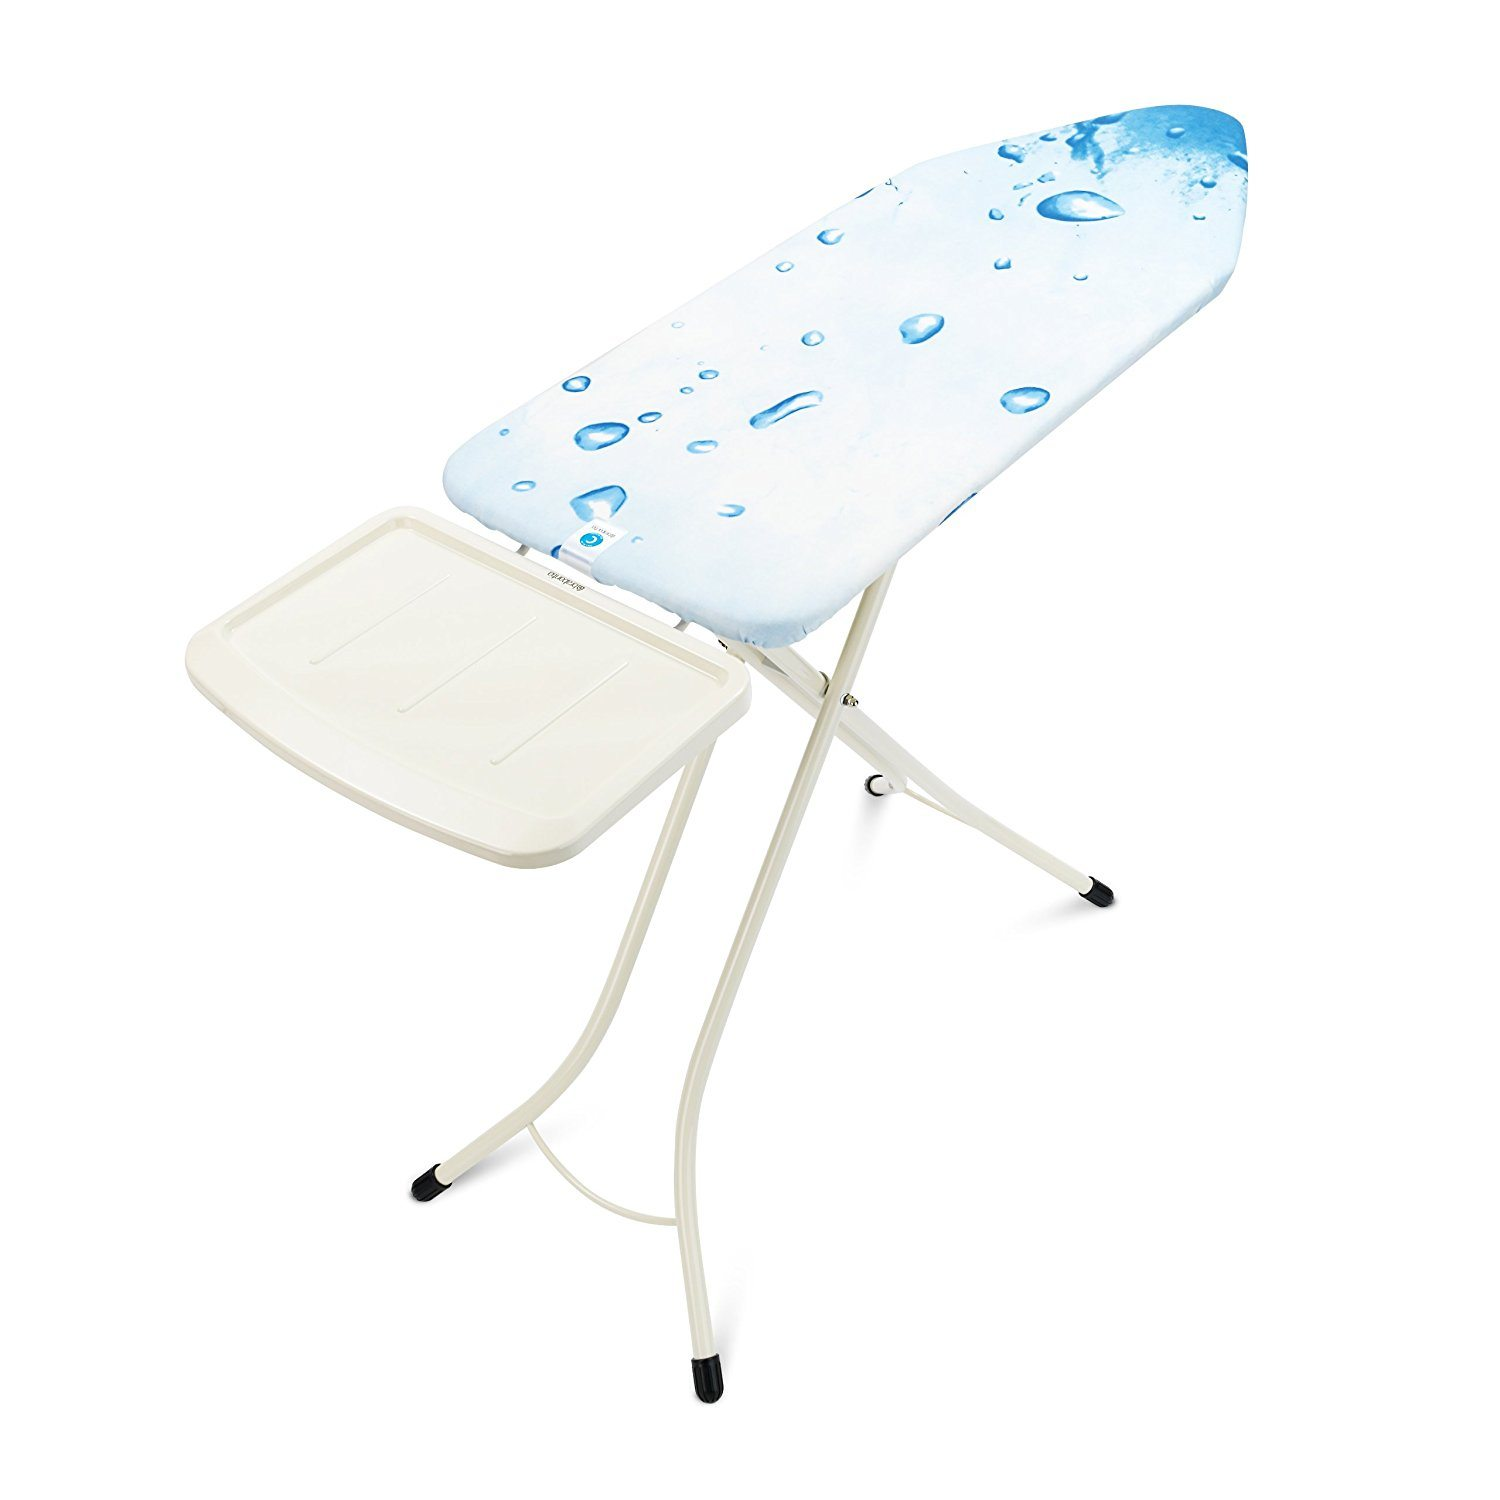 Brabantia Ironing Board with Solid Steam Unit Holder